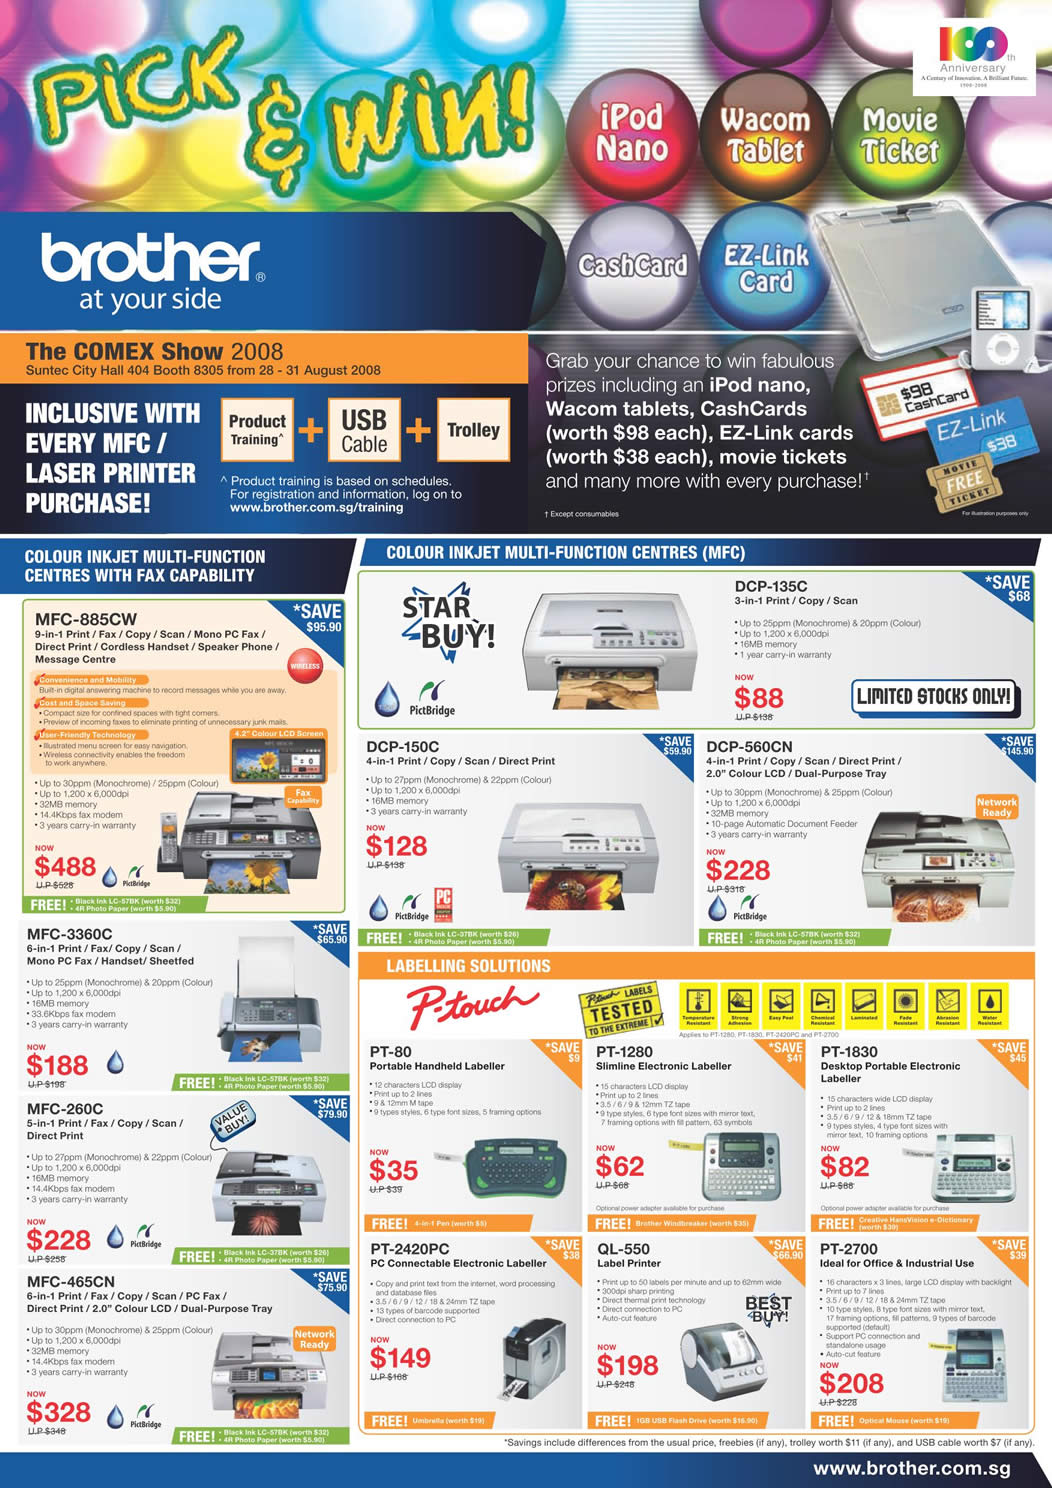 Comex 2008 price list image brochure of Brother Comex Promo